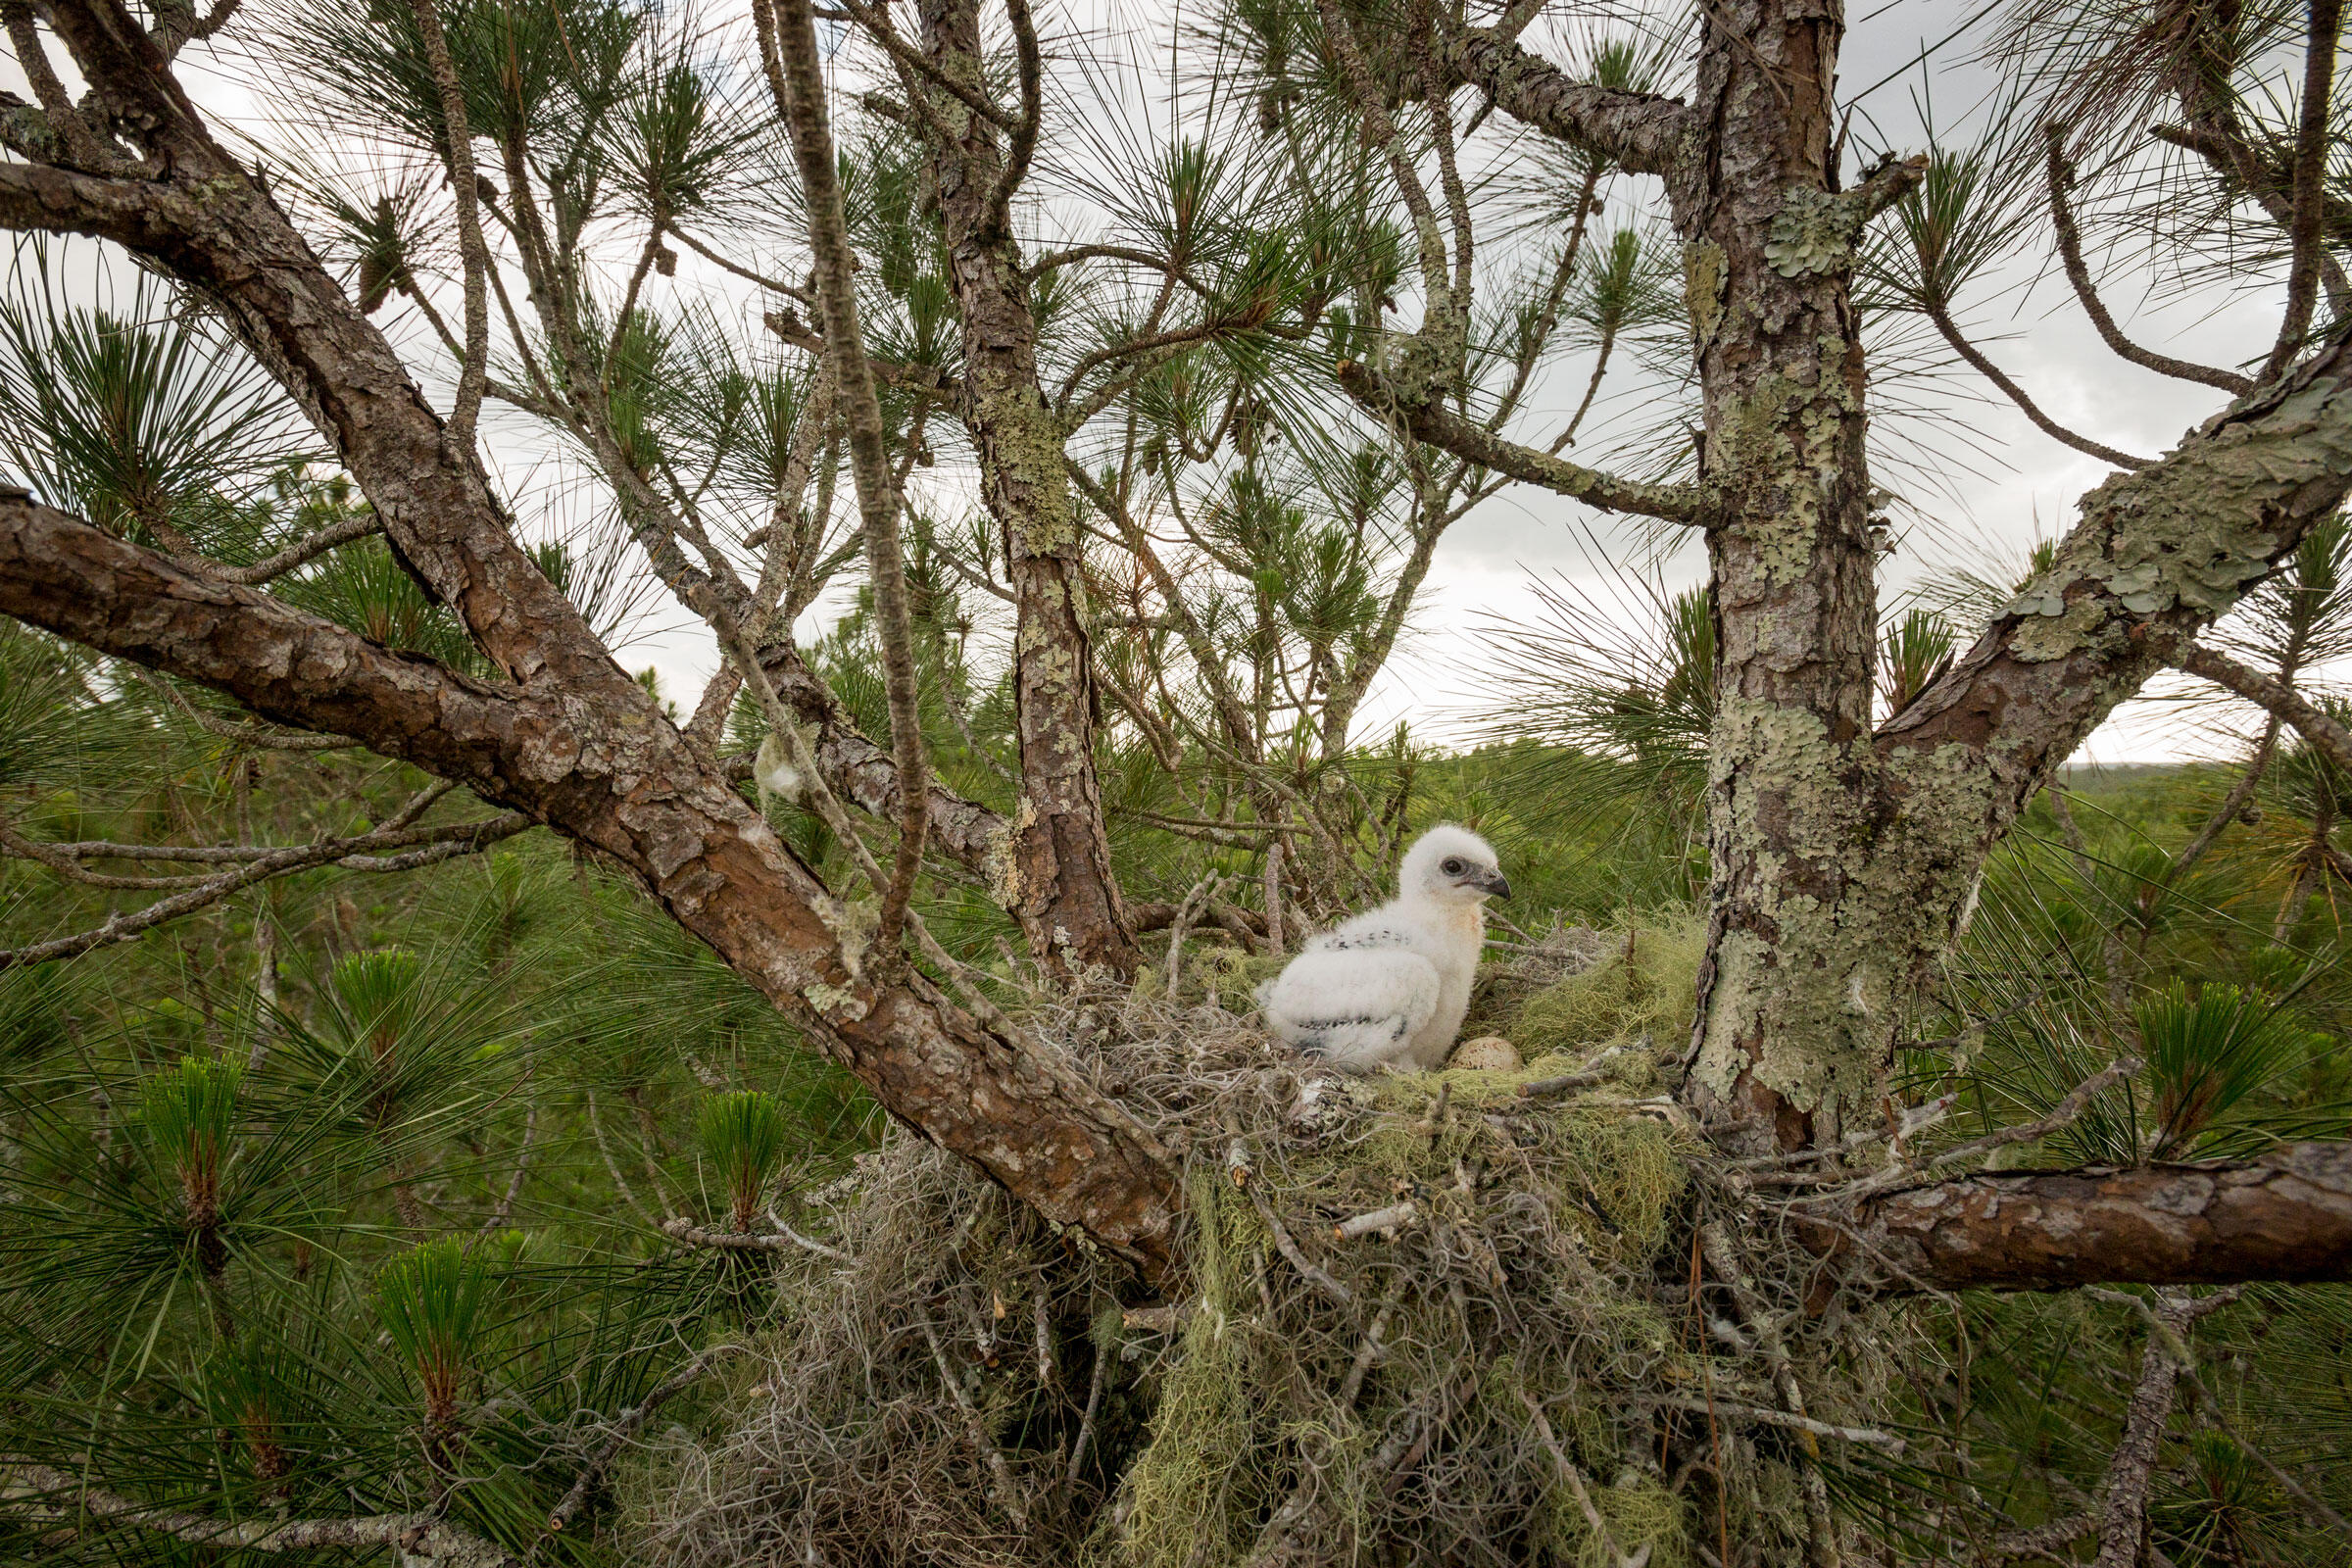 A chick, roughly 15 days old, waits for its parents to return with breakfast, sitting next to its unhatched sibling in Withlacoochie State Forest, Florida. Mac Stone